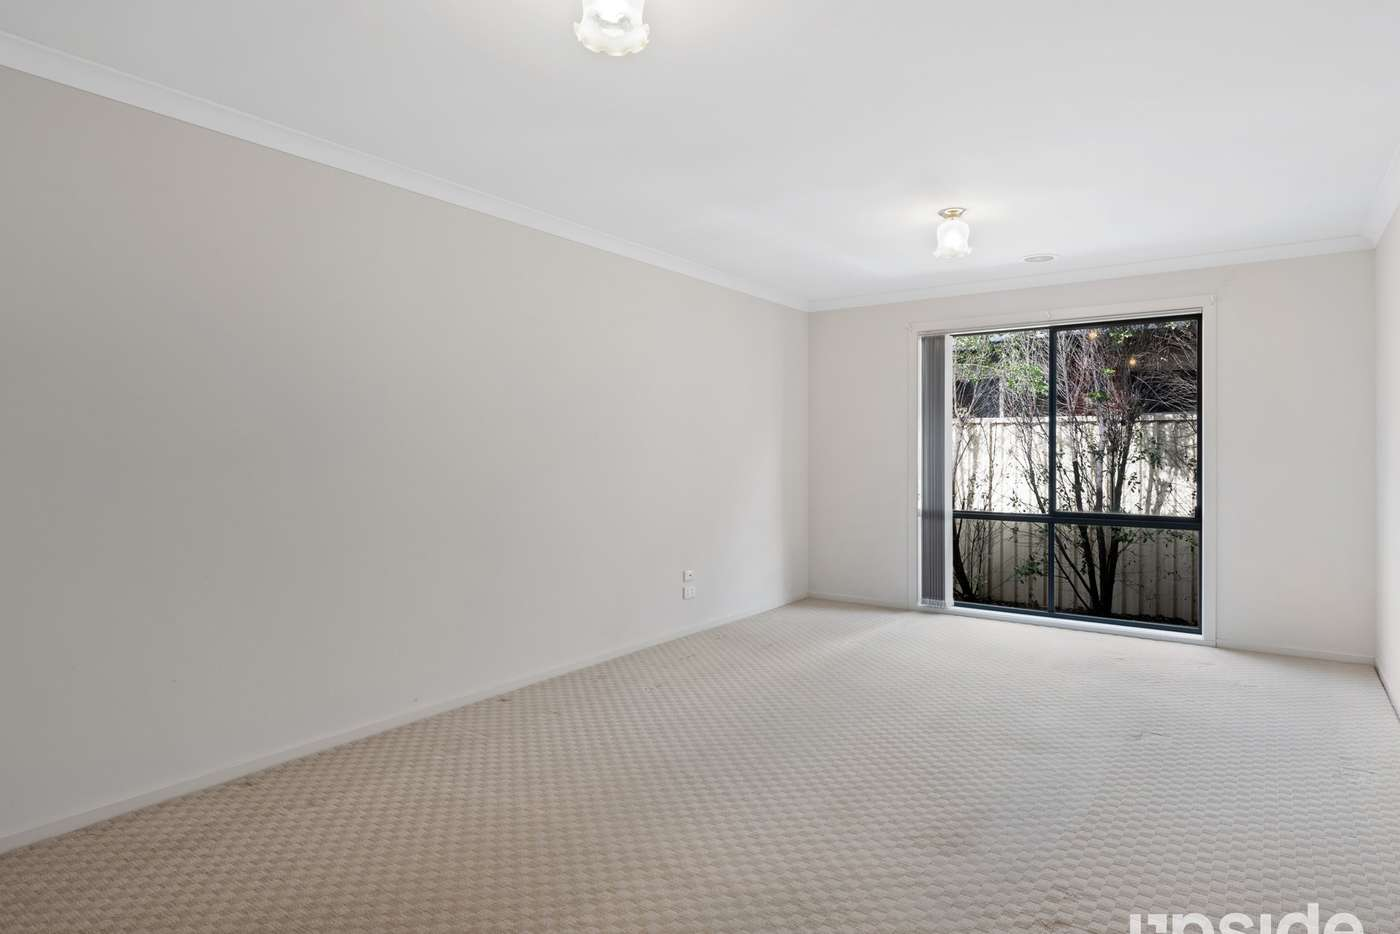 Fifth view of Homely house listing, 10 Nepeta Way, Pakenham VIC 3810